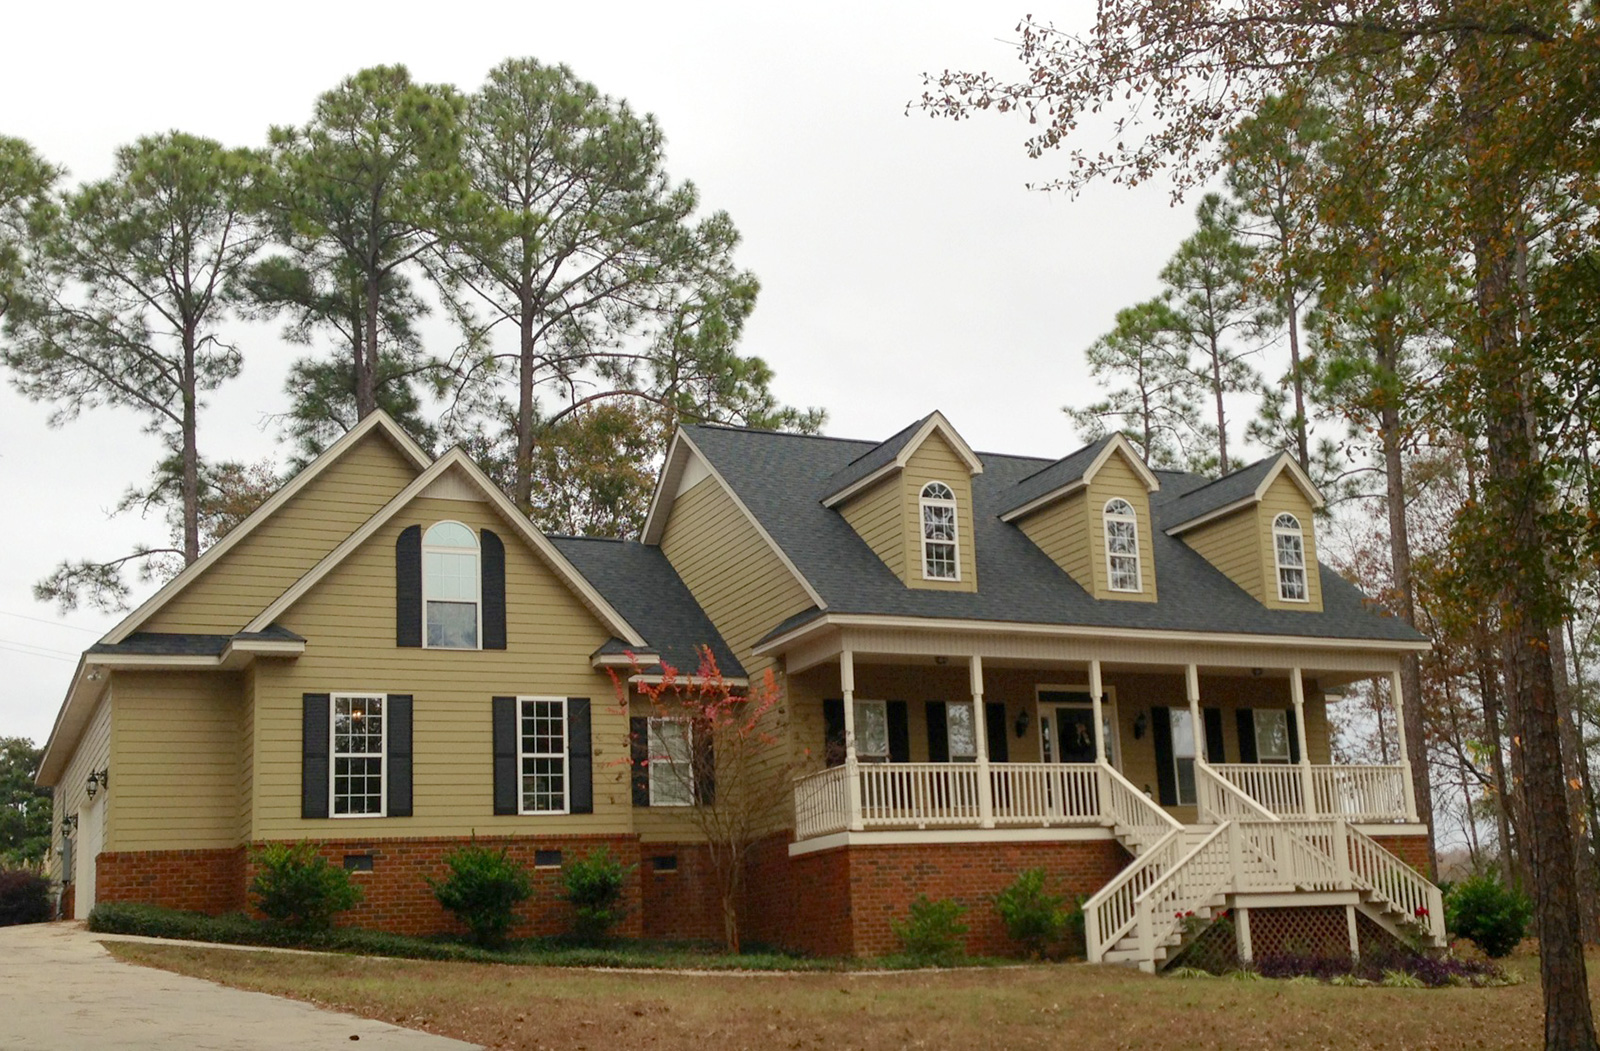 Rain gutter solutions american roofing vinyl siding sc ga nc tn mo for All american exterior solutions